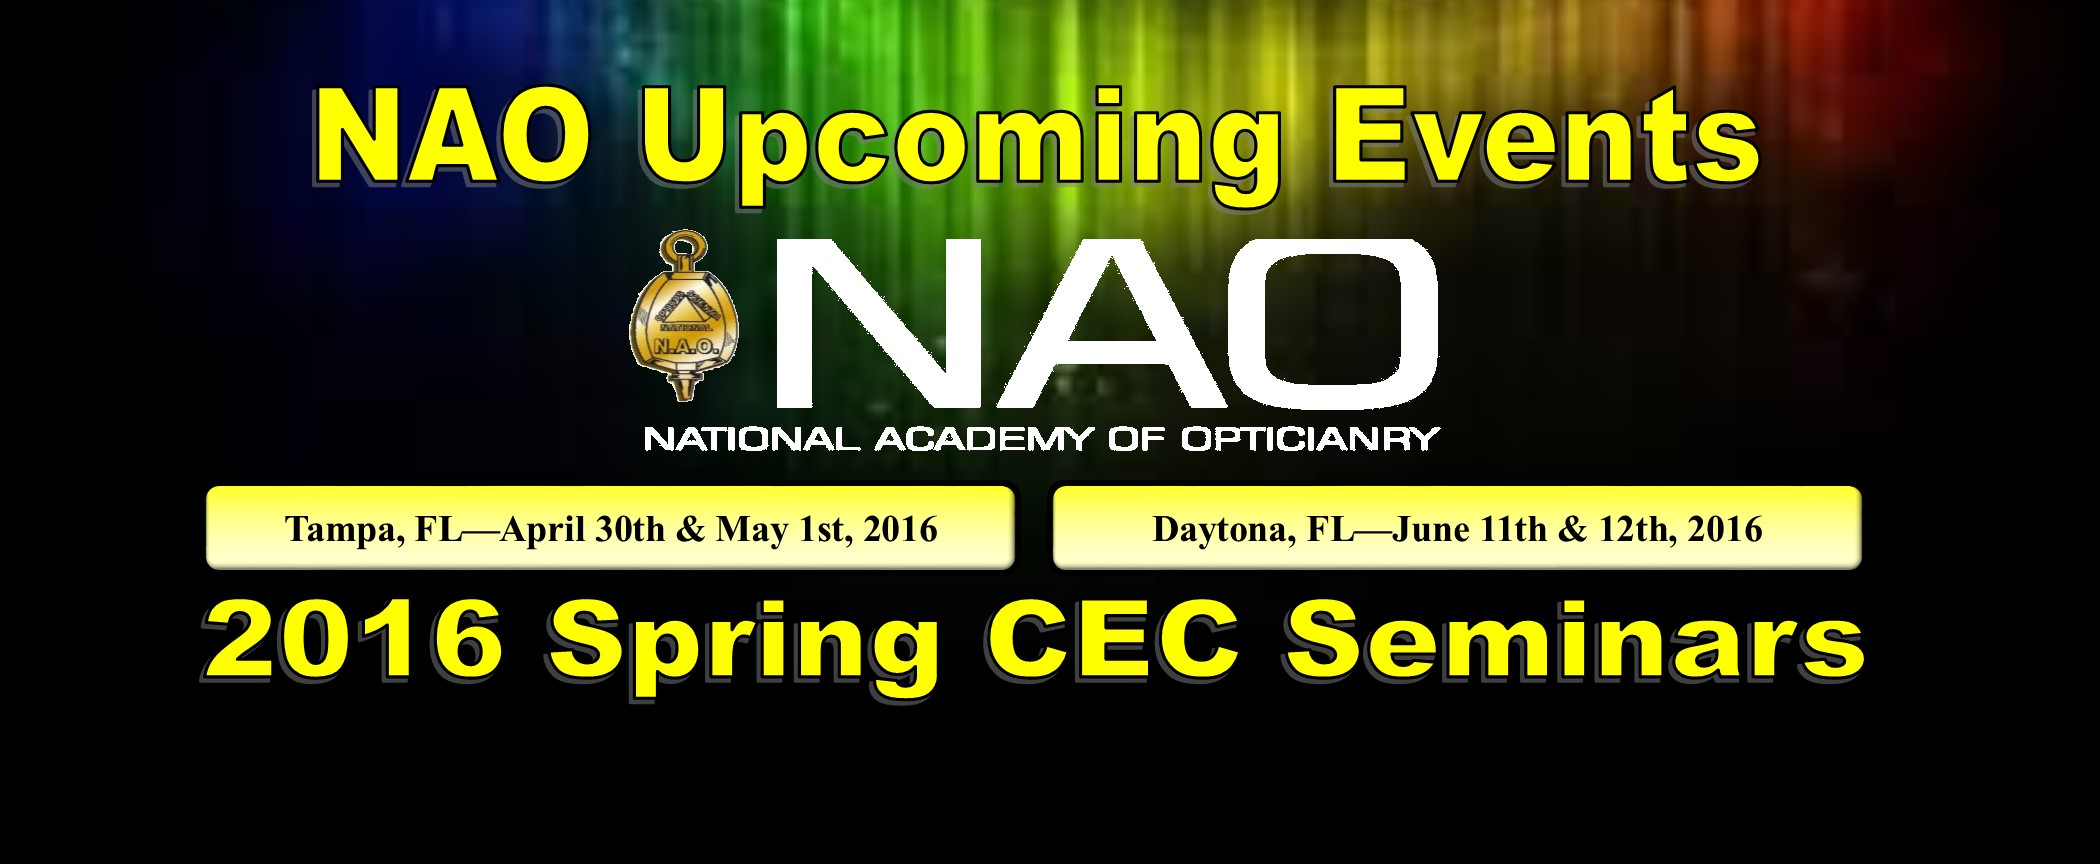 Upcoming-Events-2016